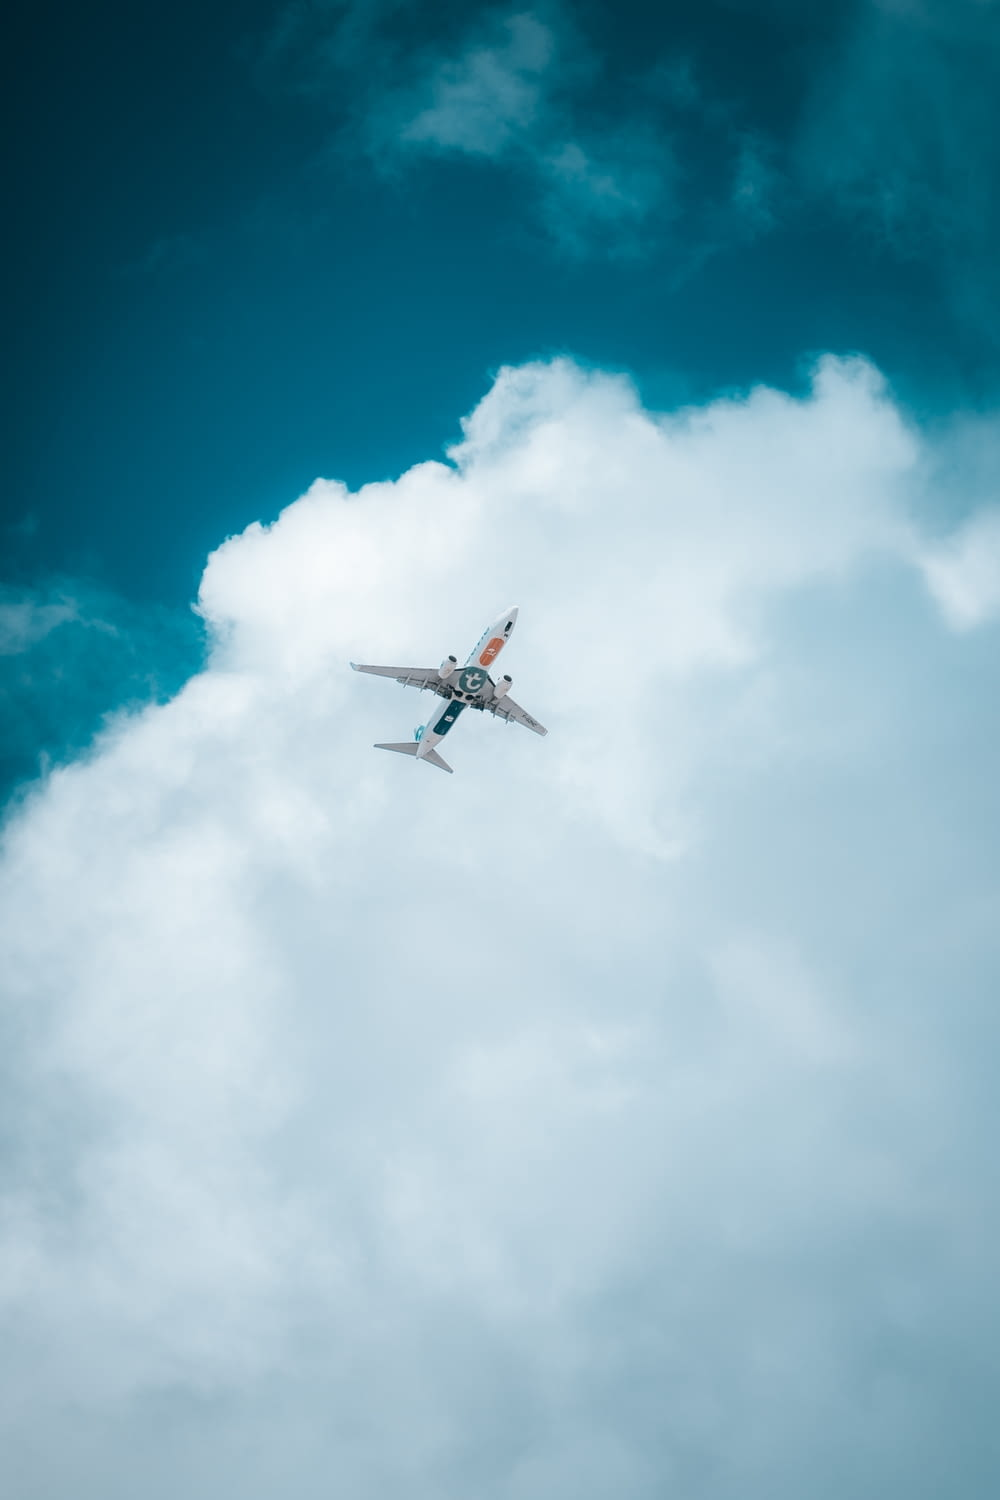 white airplane in mid air under blue sky during daytime